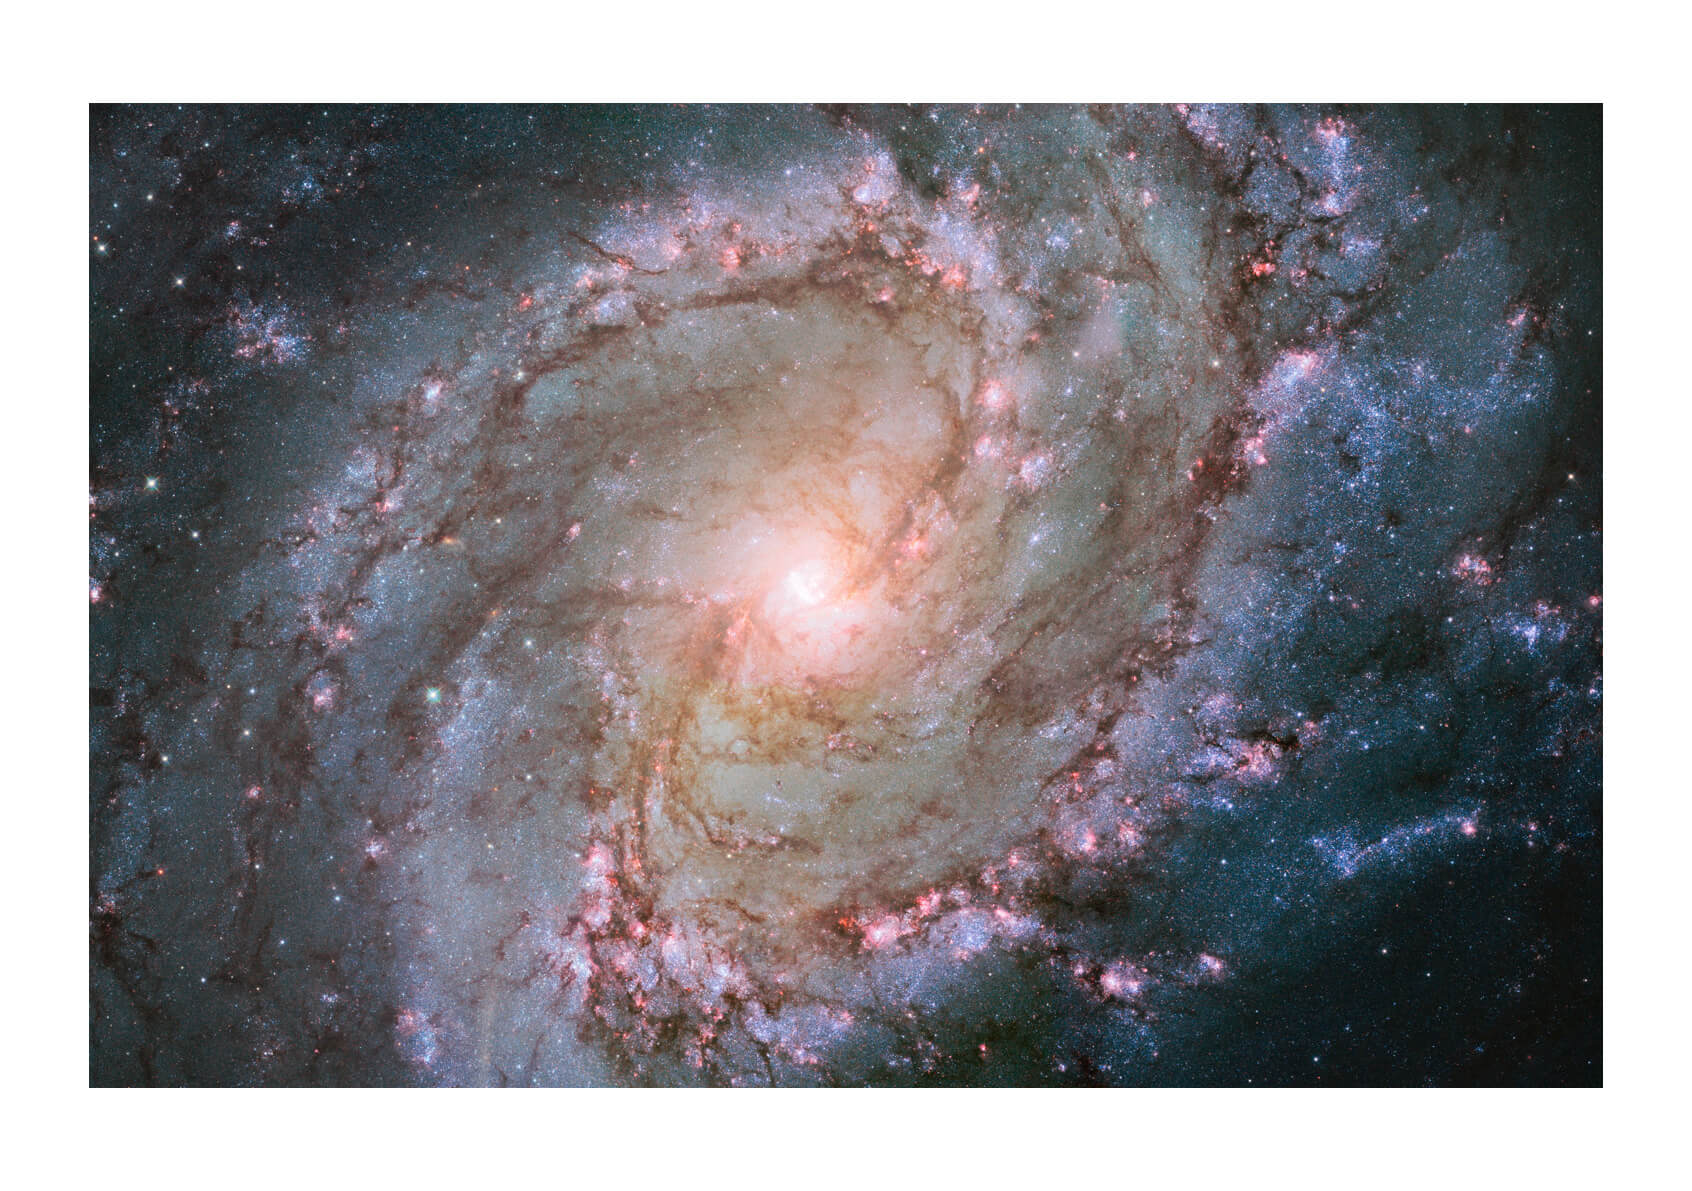 Hubble Telescope - view of barred spiral galaxy Messier 83